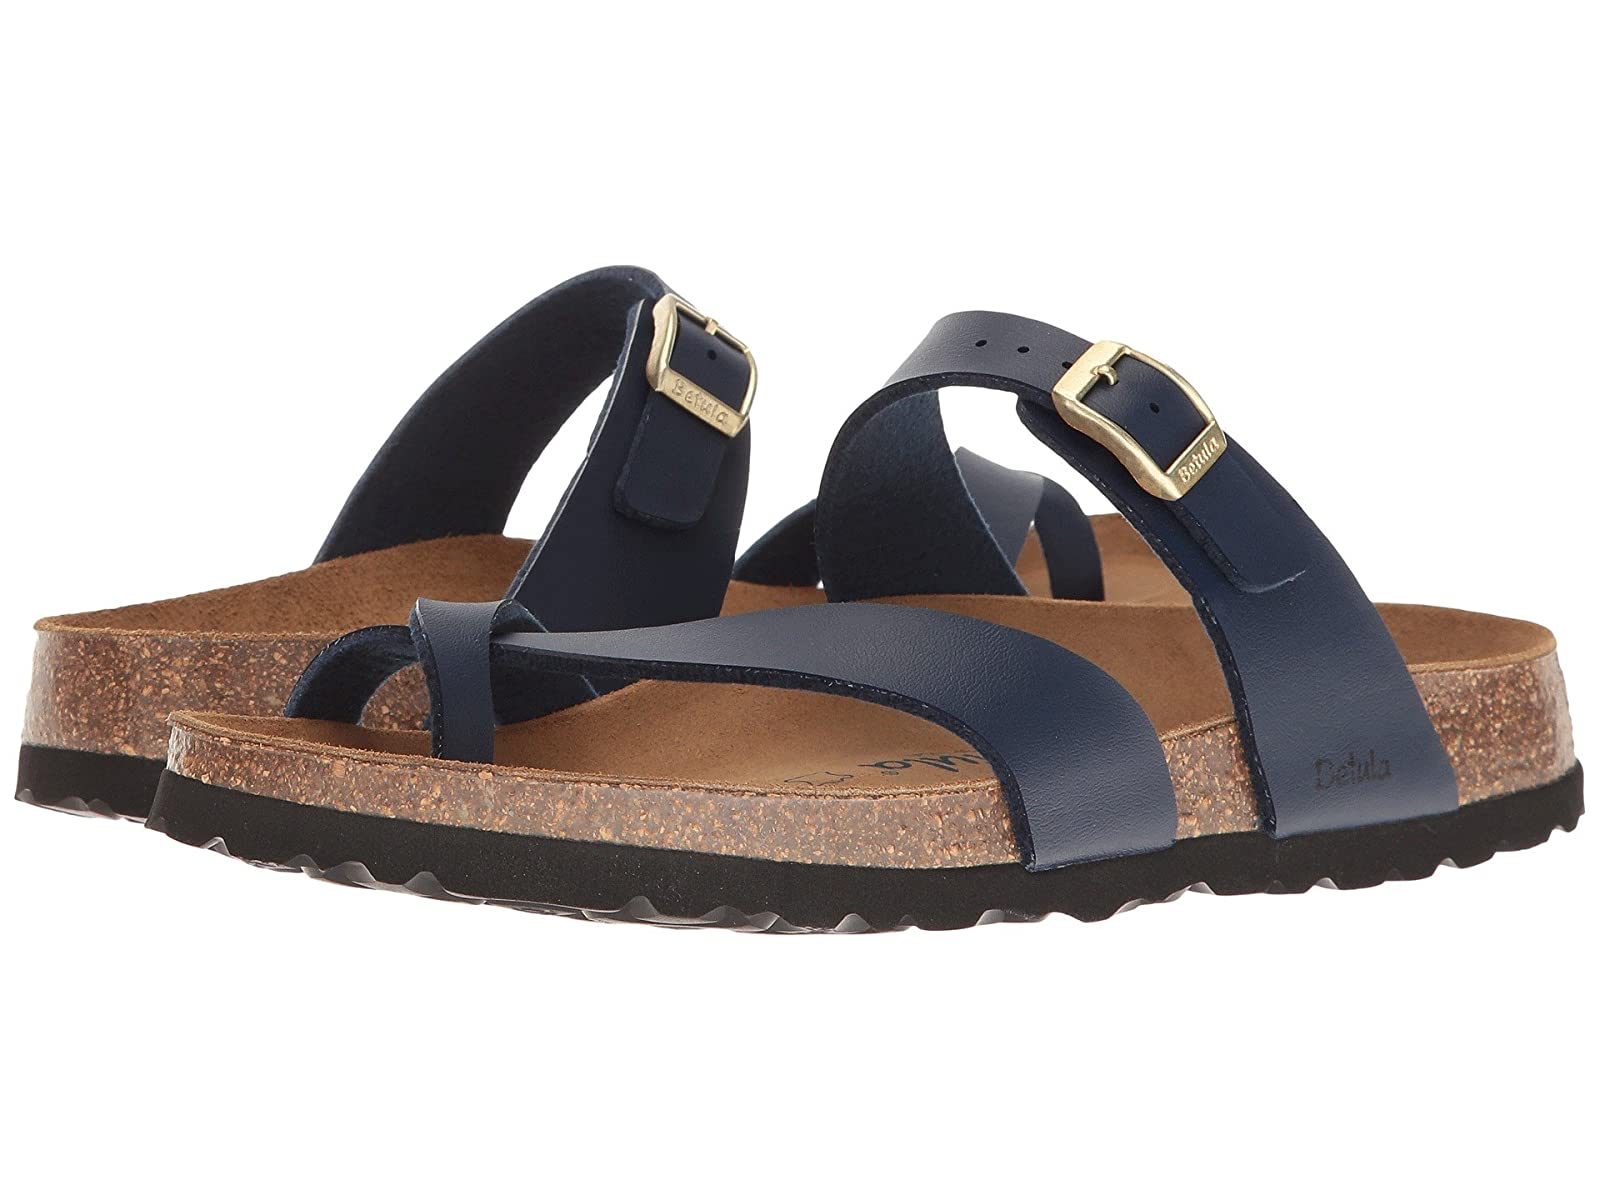 Betula Licensed by Birkenstock Mia Birko-Flor™Cheap and distinctive eye-catching shoes